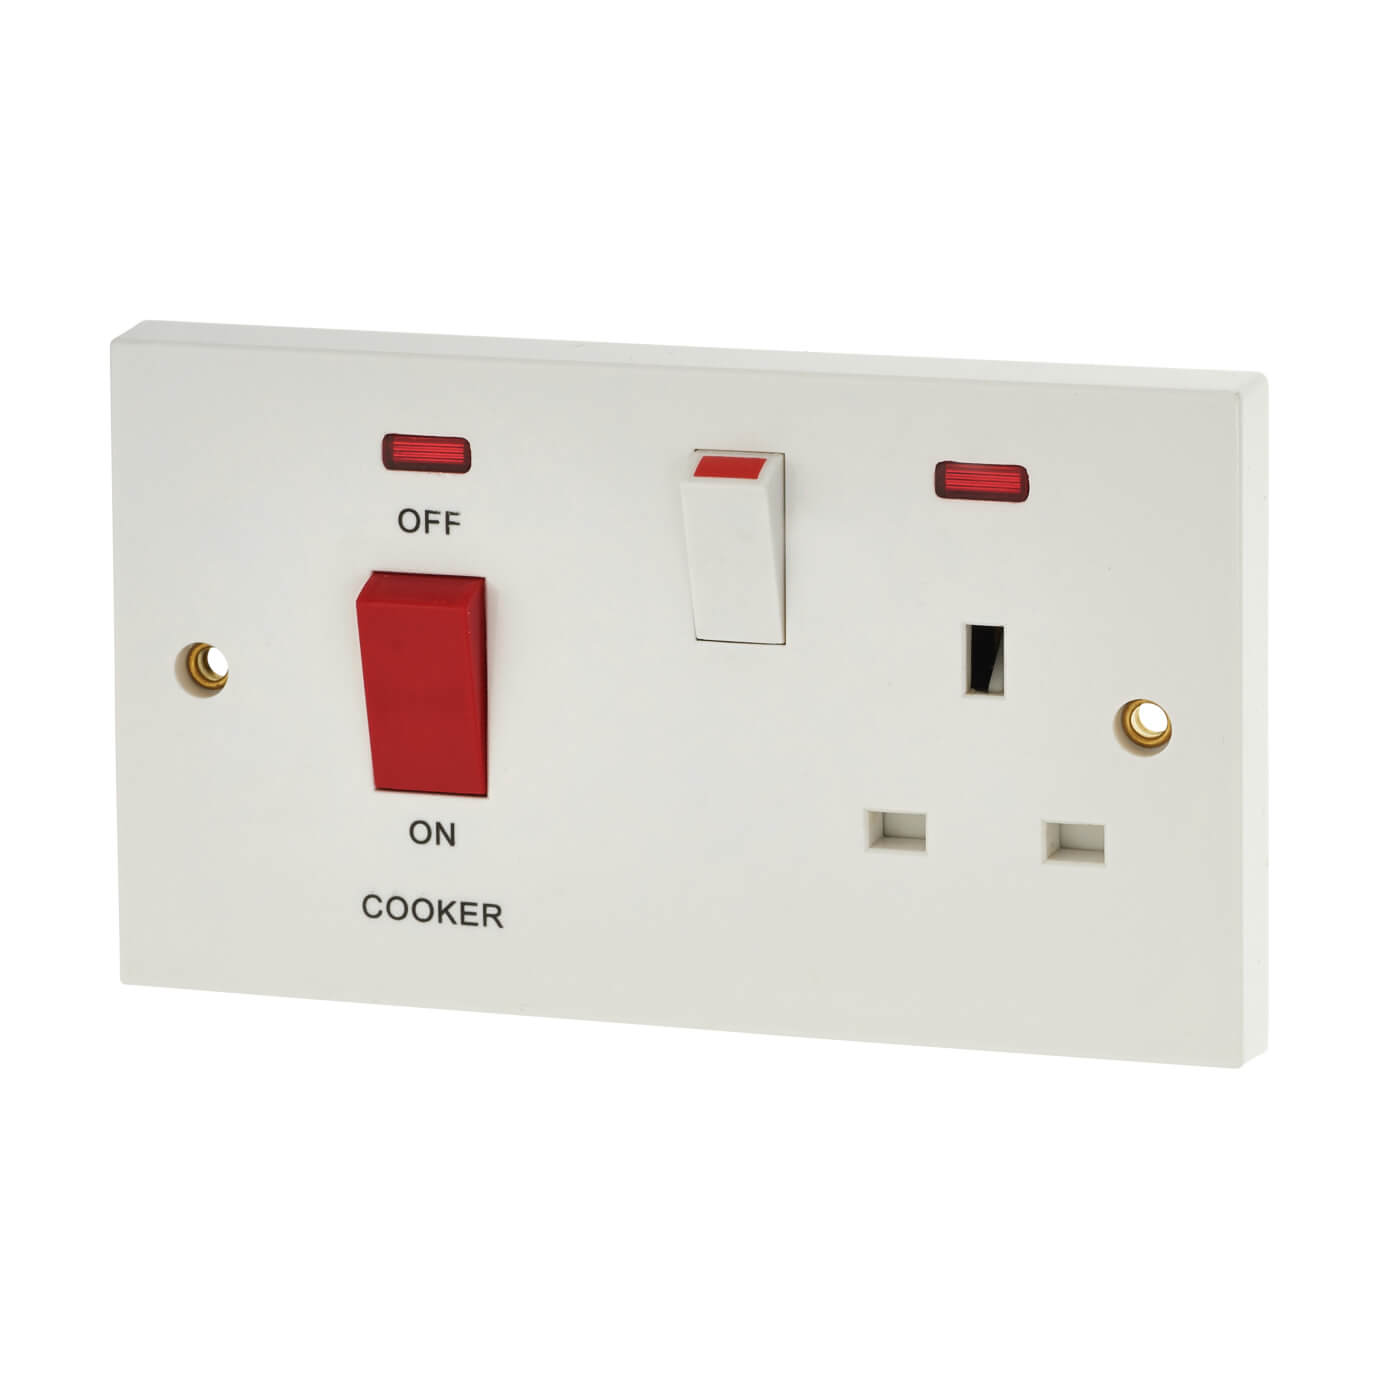 2 gang cooker switch wiring diagram lincoln electric welder parts bg 45a control with neon white